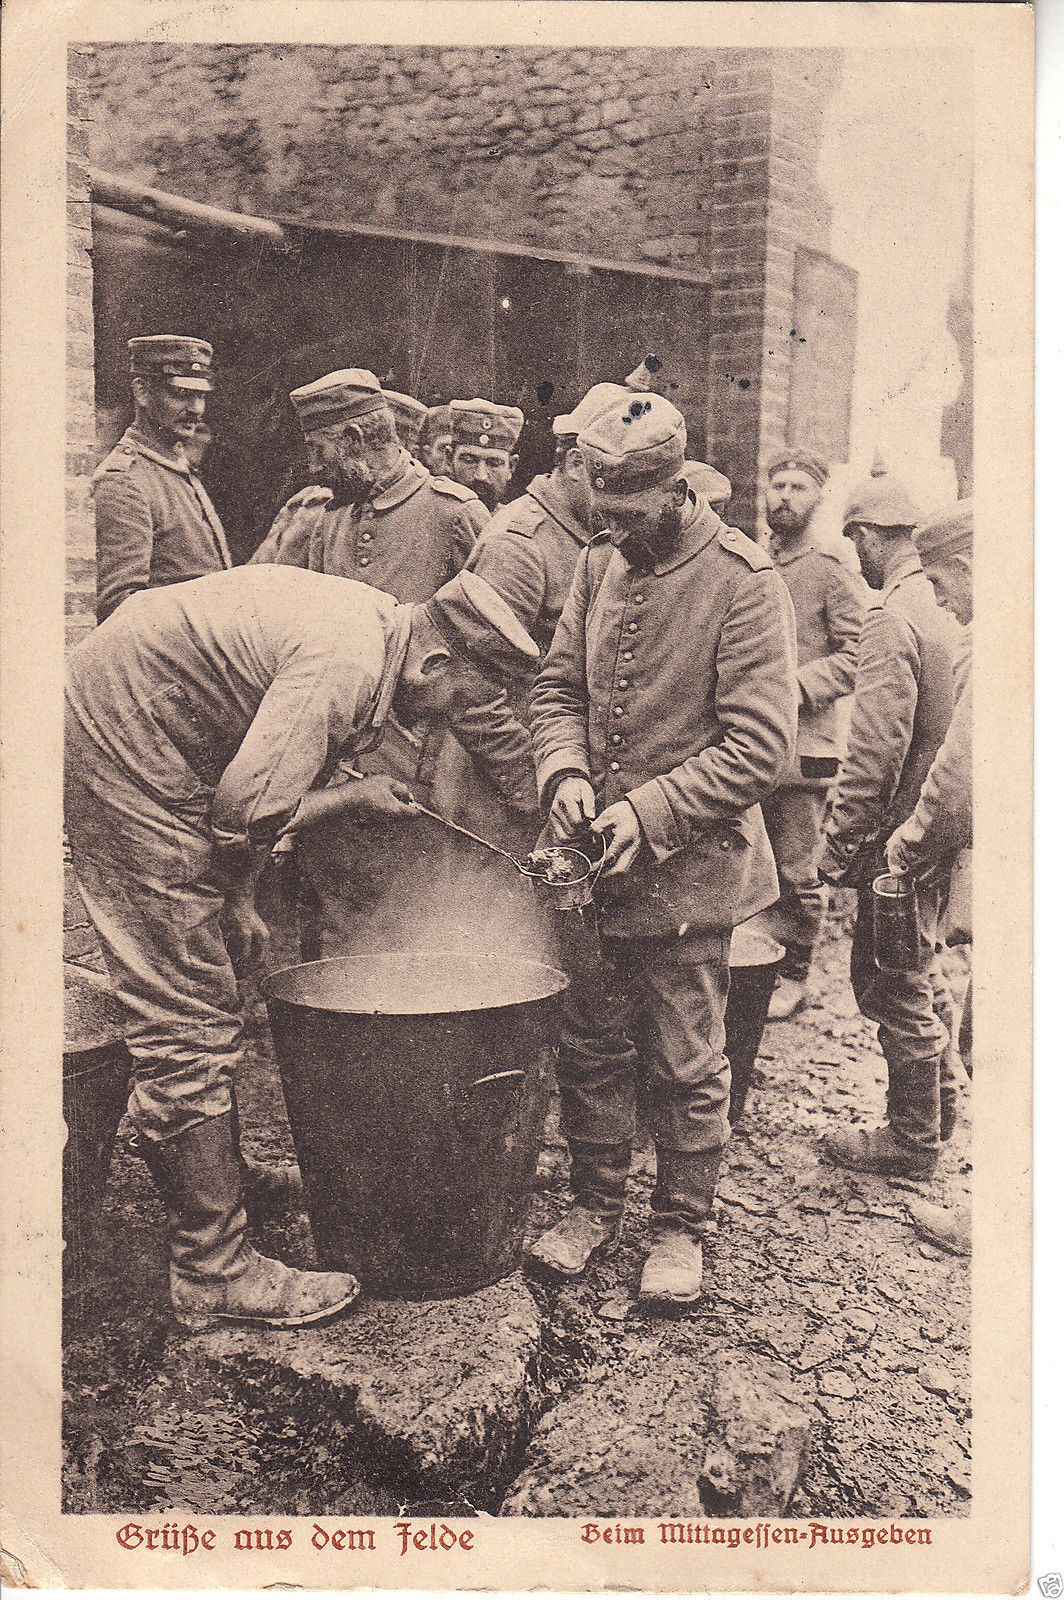 Military ww1 greetings from the field soldiers mealtime german military ww1 greetings from the field soldiers mealtime german pc p341 in collectables postcards military ebay m4hsunfo